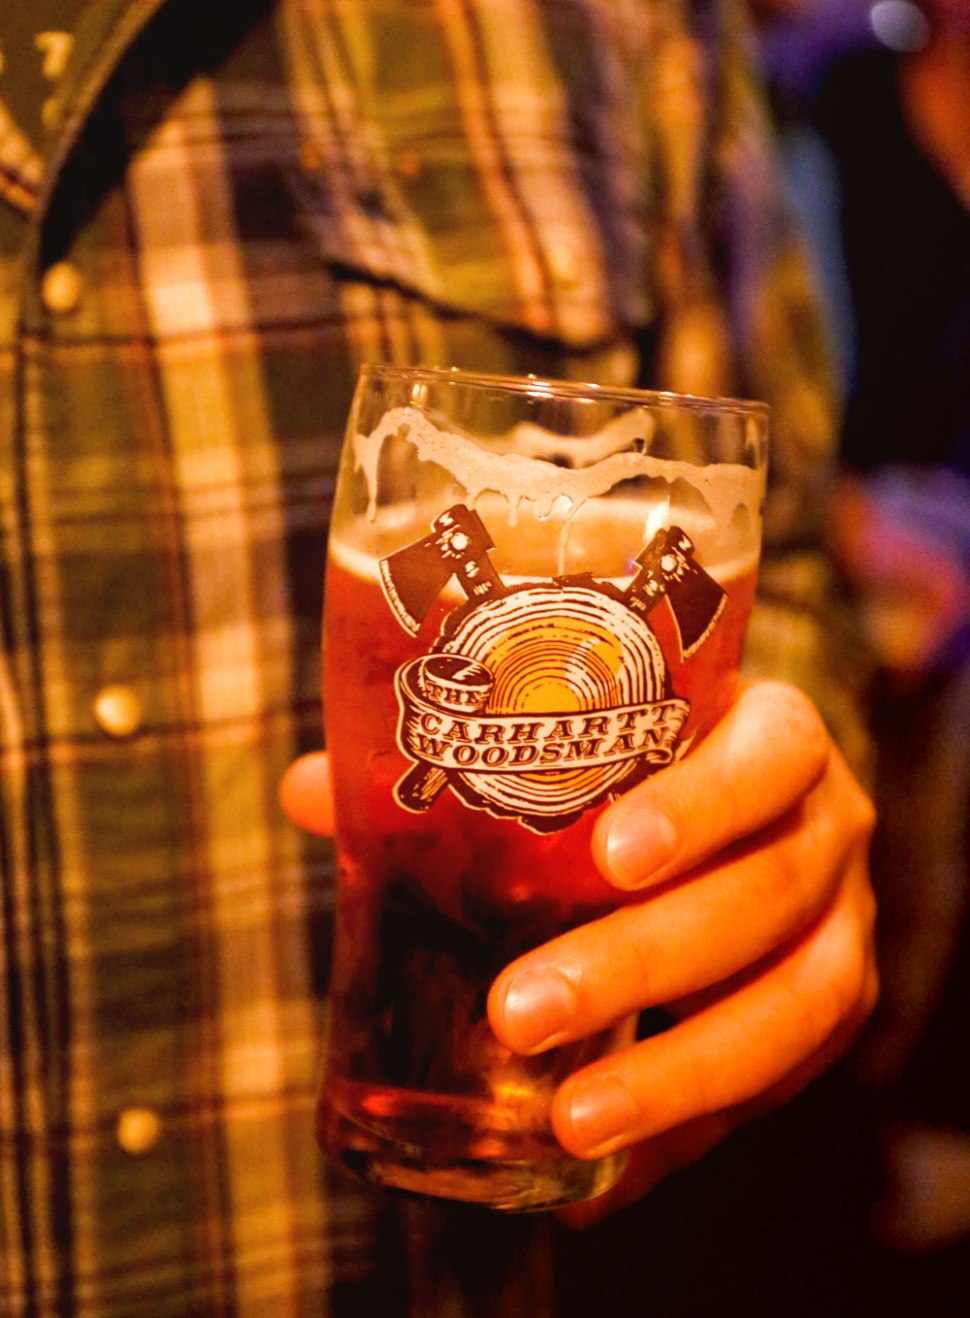 Carhartt New Holland Beer / Crafted in Carhartt